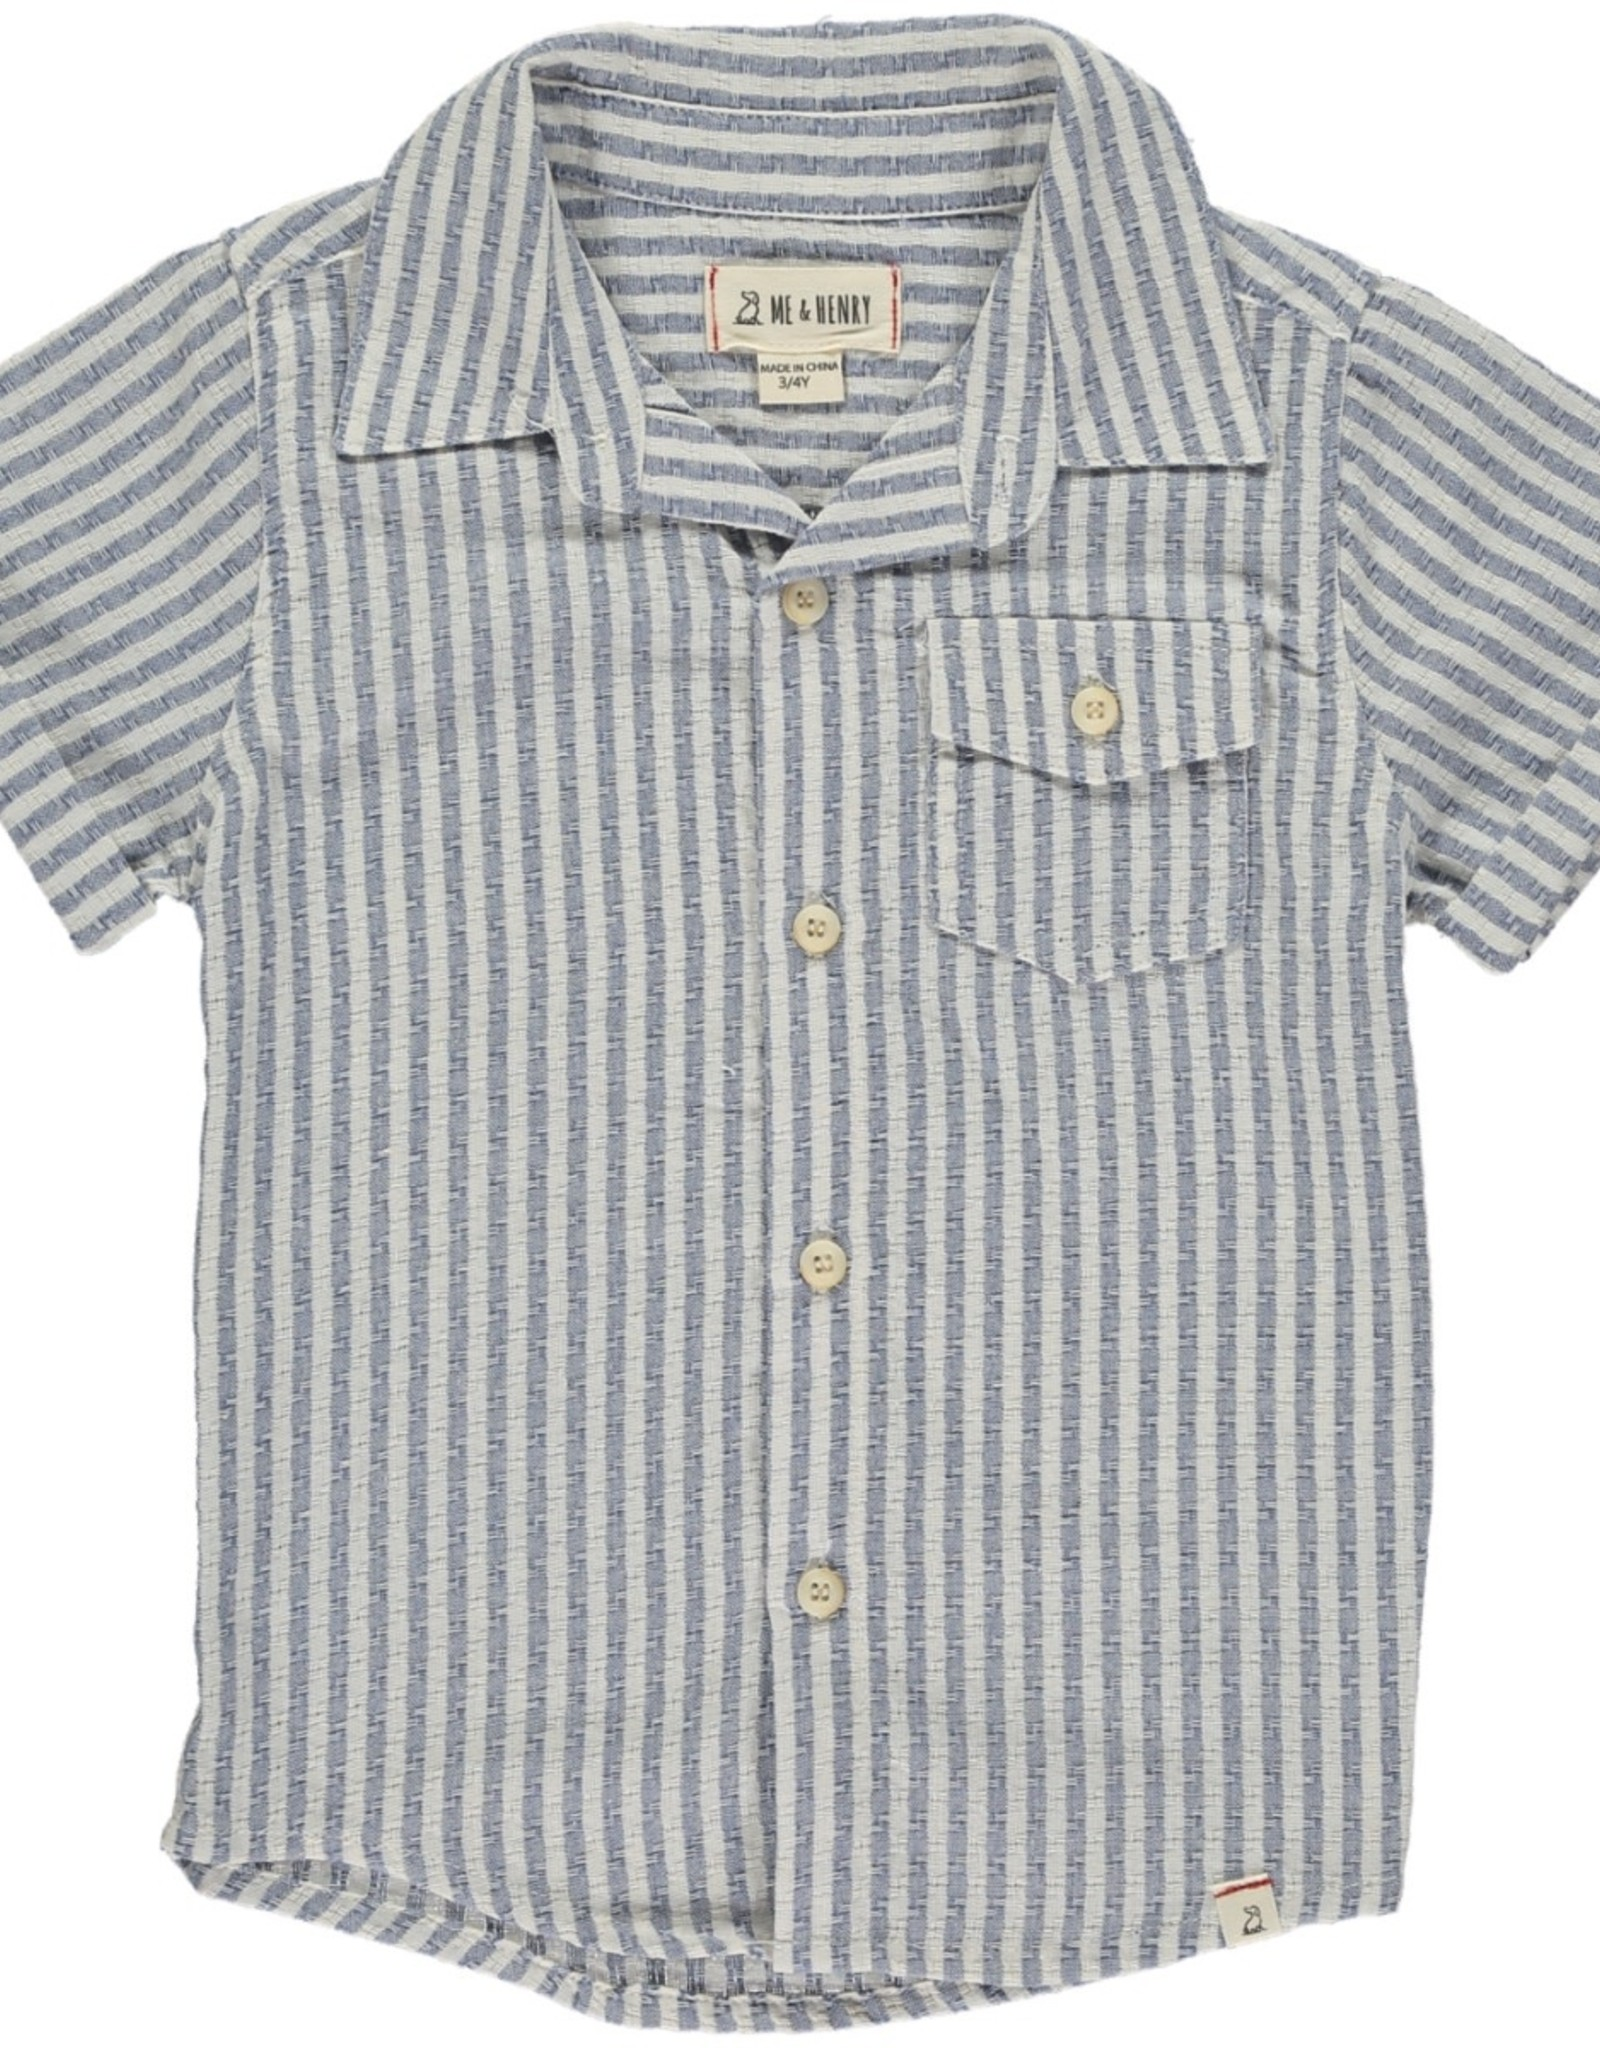 Blue/white stripe s/s shirt